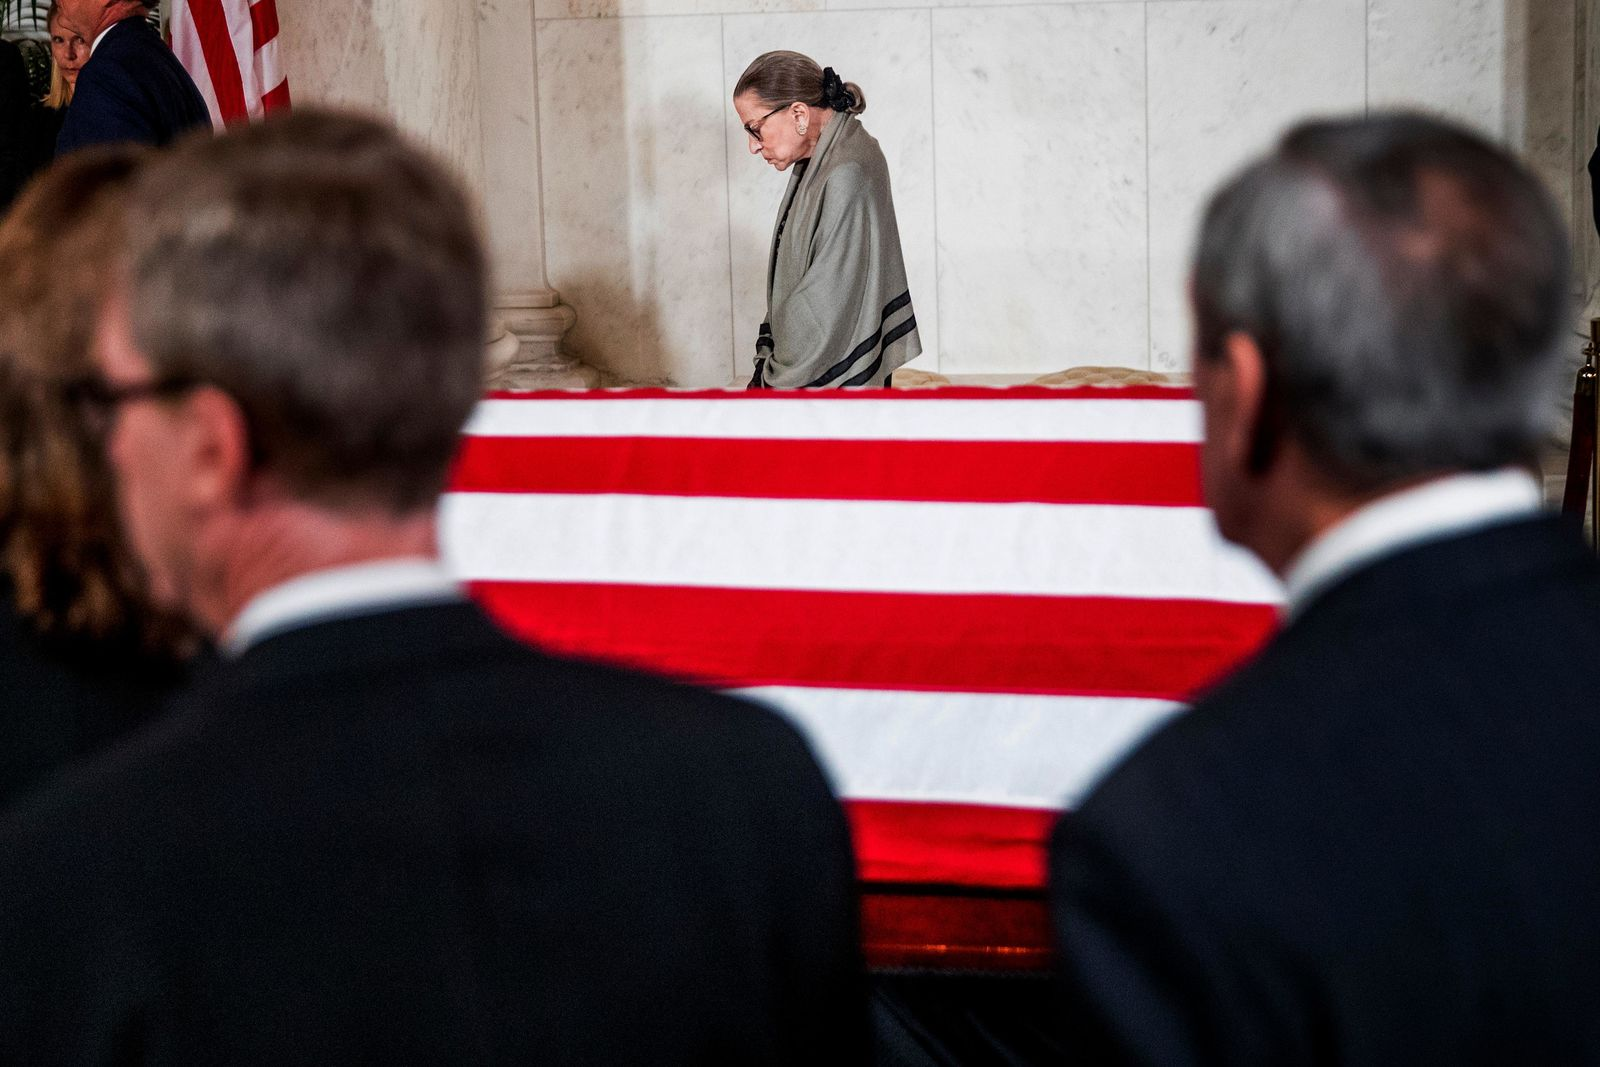 Associate Justice Ruth Bader Ginsburg is the last justice to leave a private ceremony in the Great Hall of the Supreme Court in Washington, Monday, July 22, 2019, where the late Supreme Court Justice John Paul Stevens lies in repose. (AP Photo/Andrew Harnik, pool)